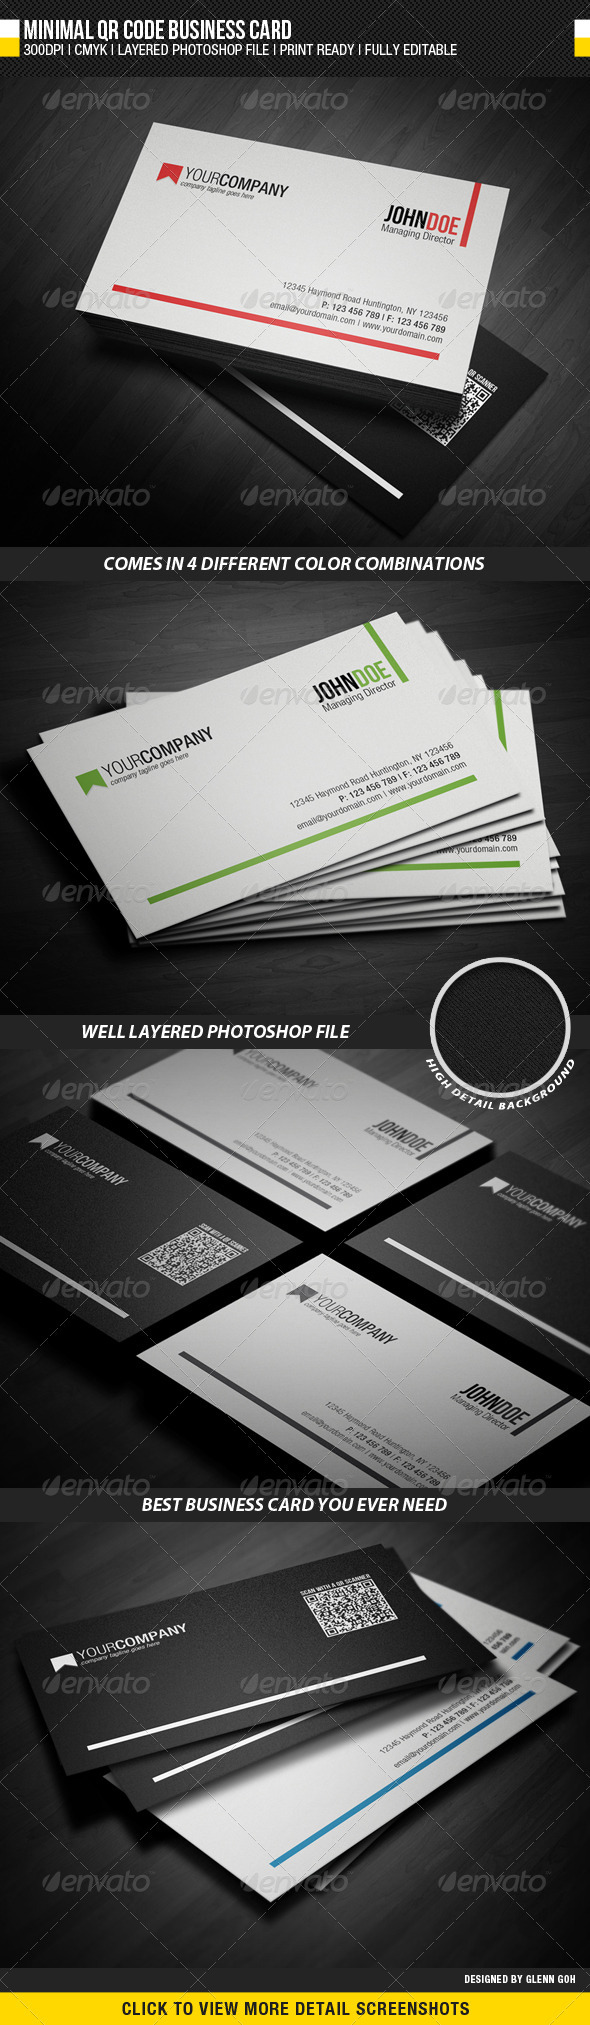 GraphicRiver Minimal QR Code Business Card 2332394